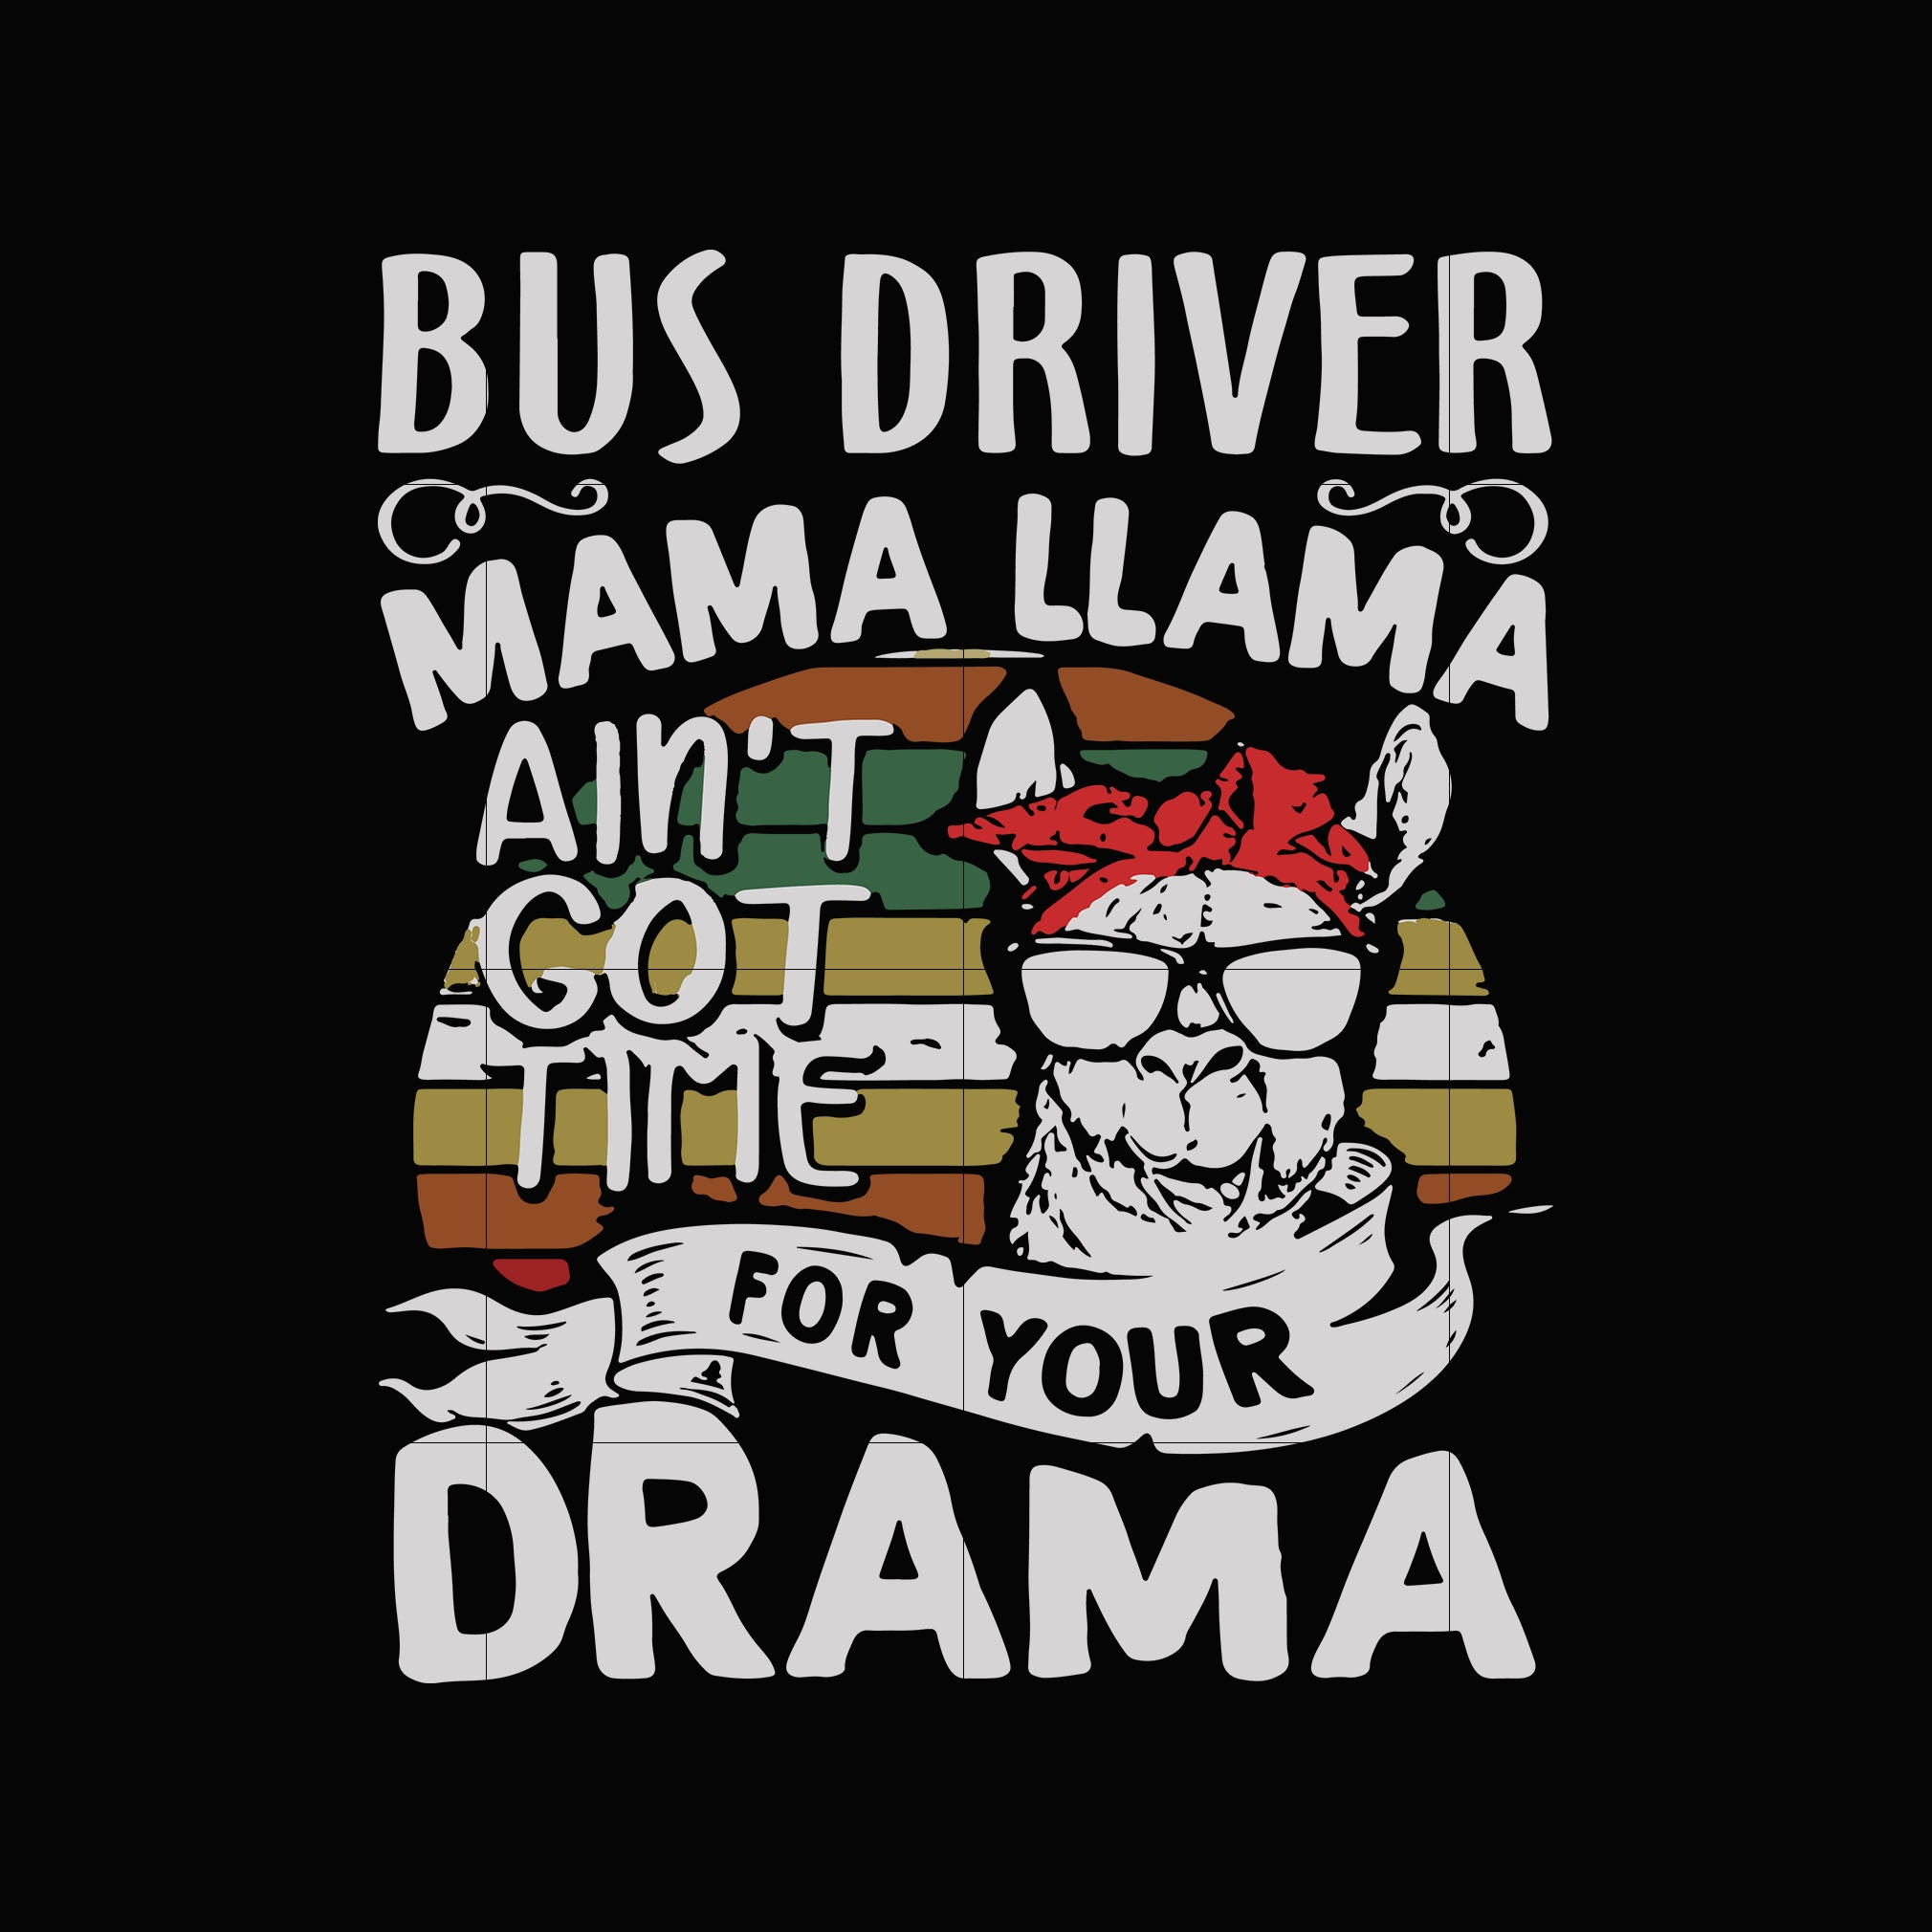 Bus driver mama llama ain't got time for your drama svg,dxf,eps,png digital file